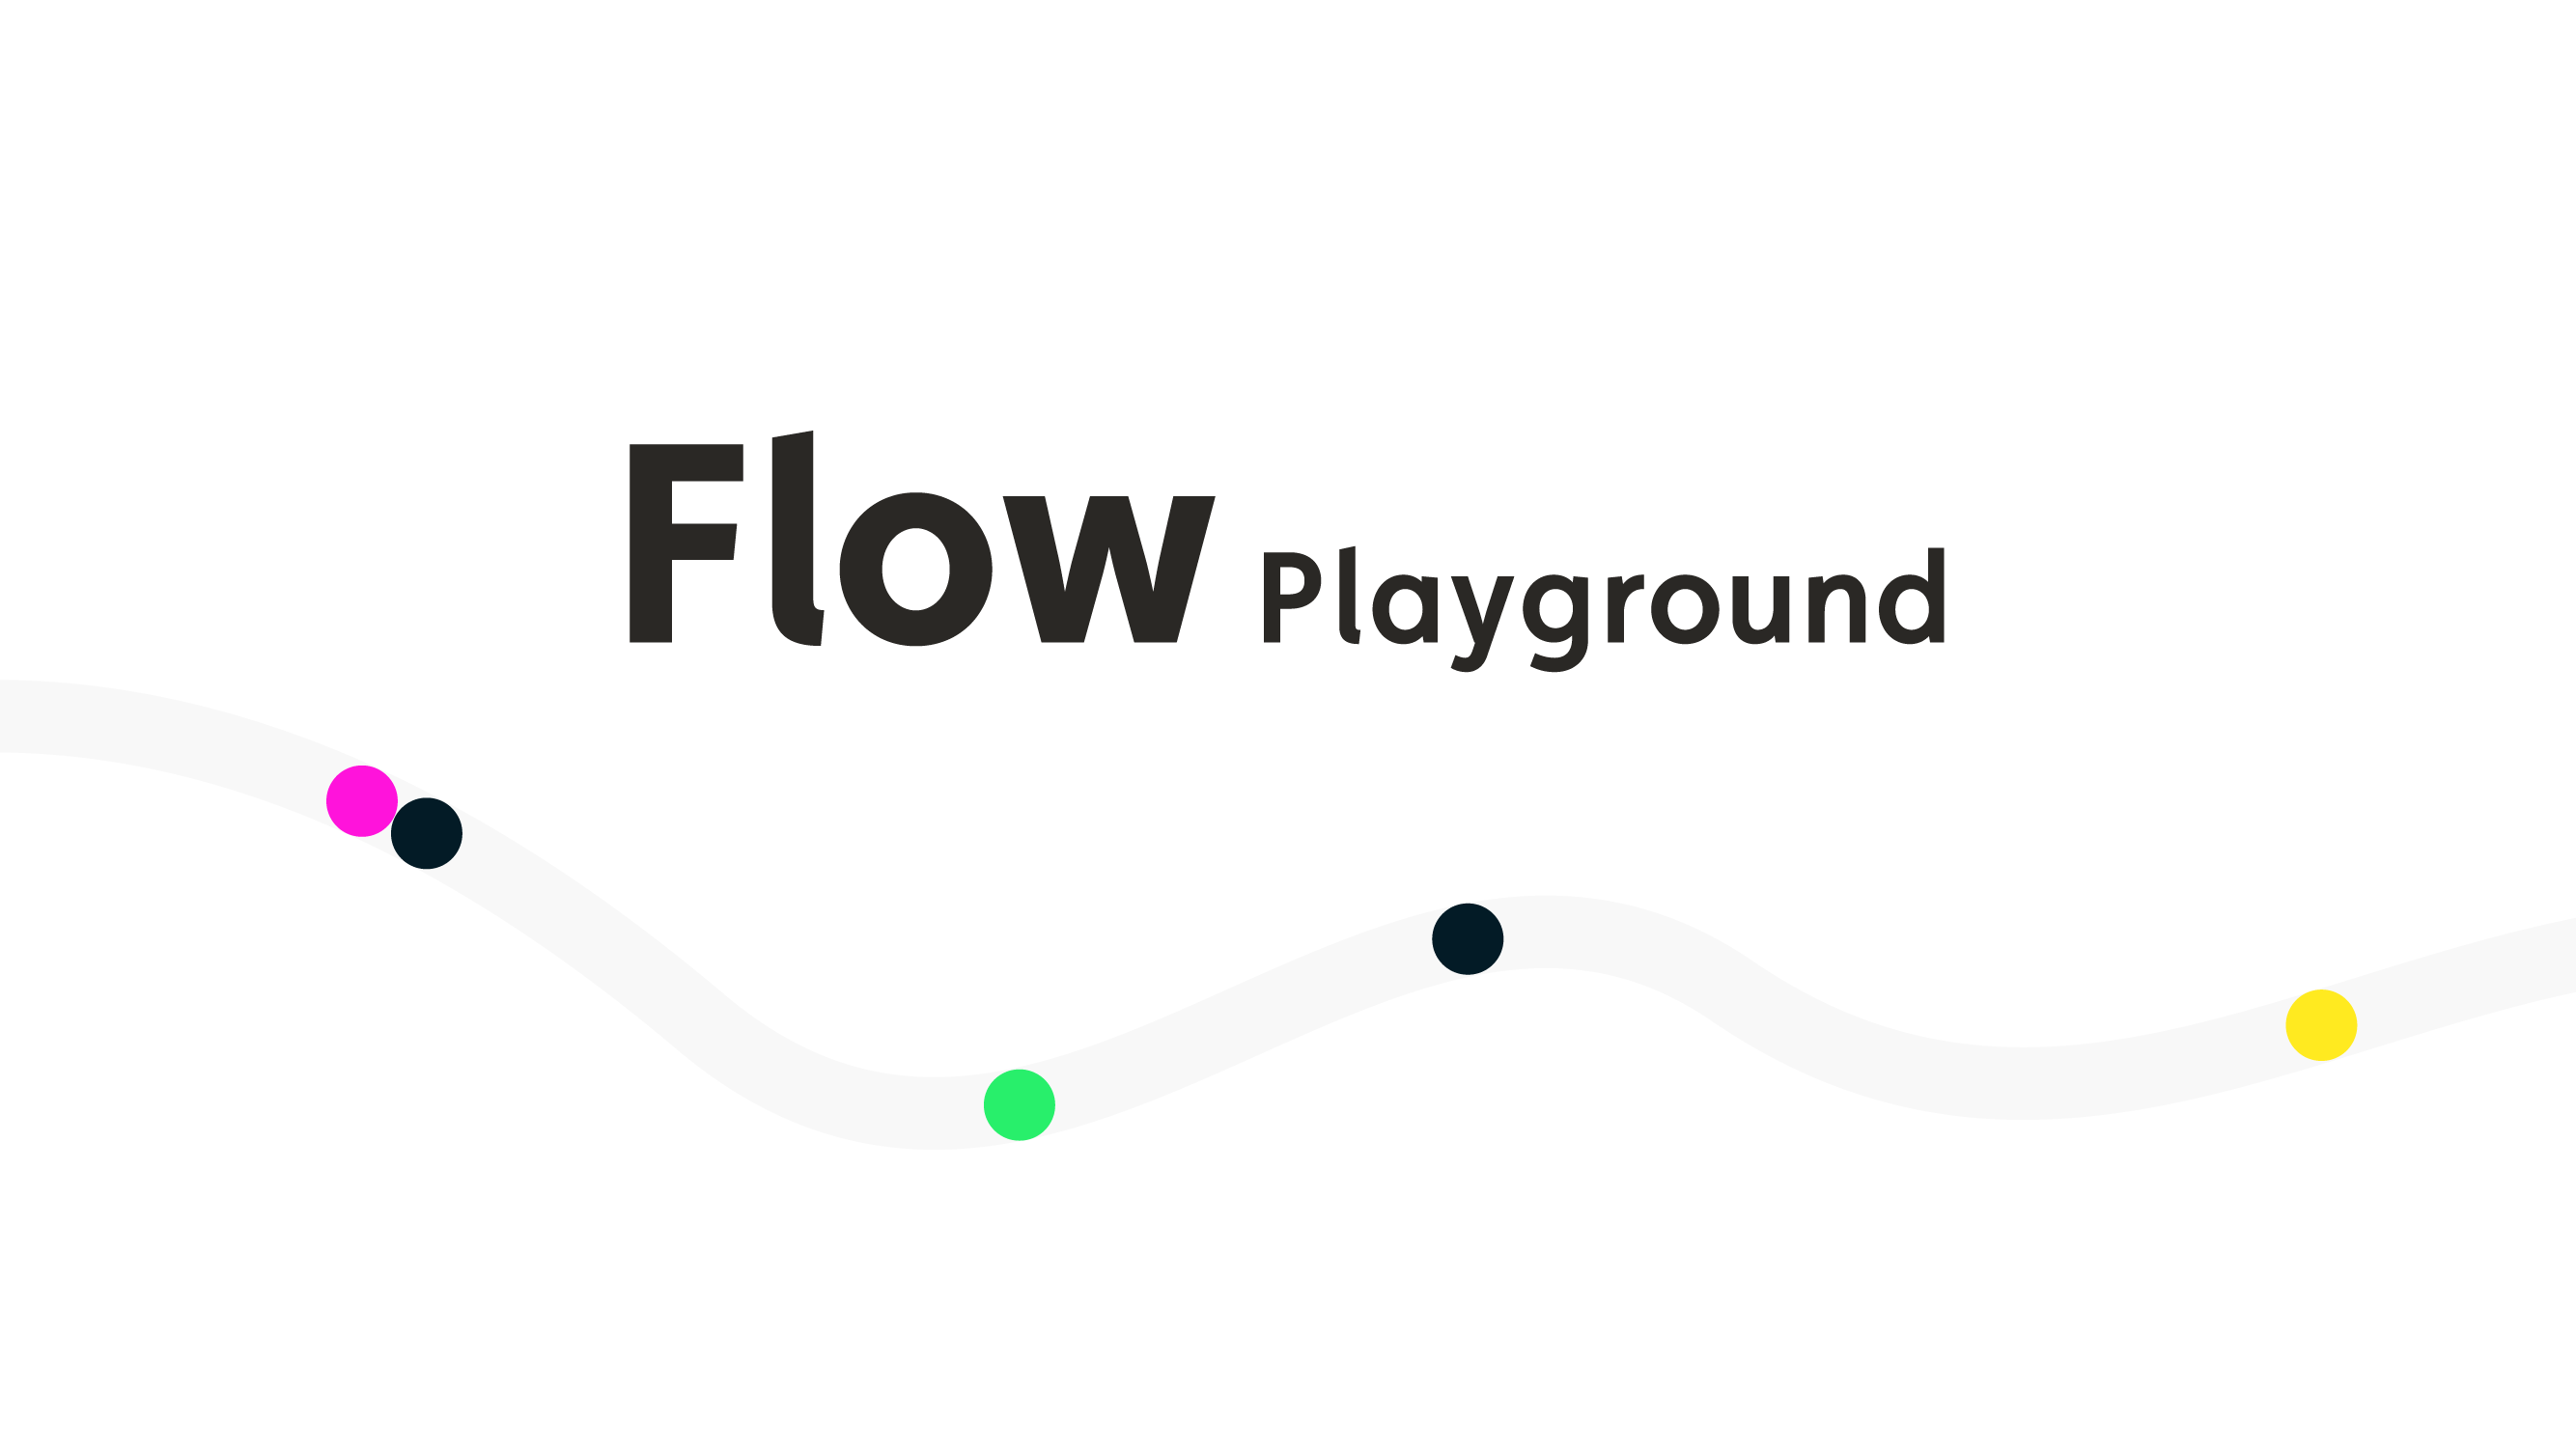 Introducing Flow Playground